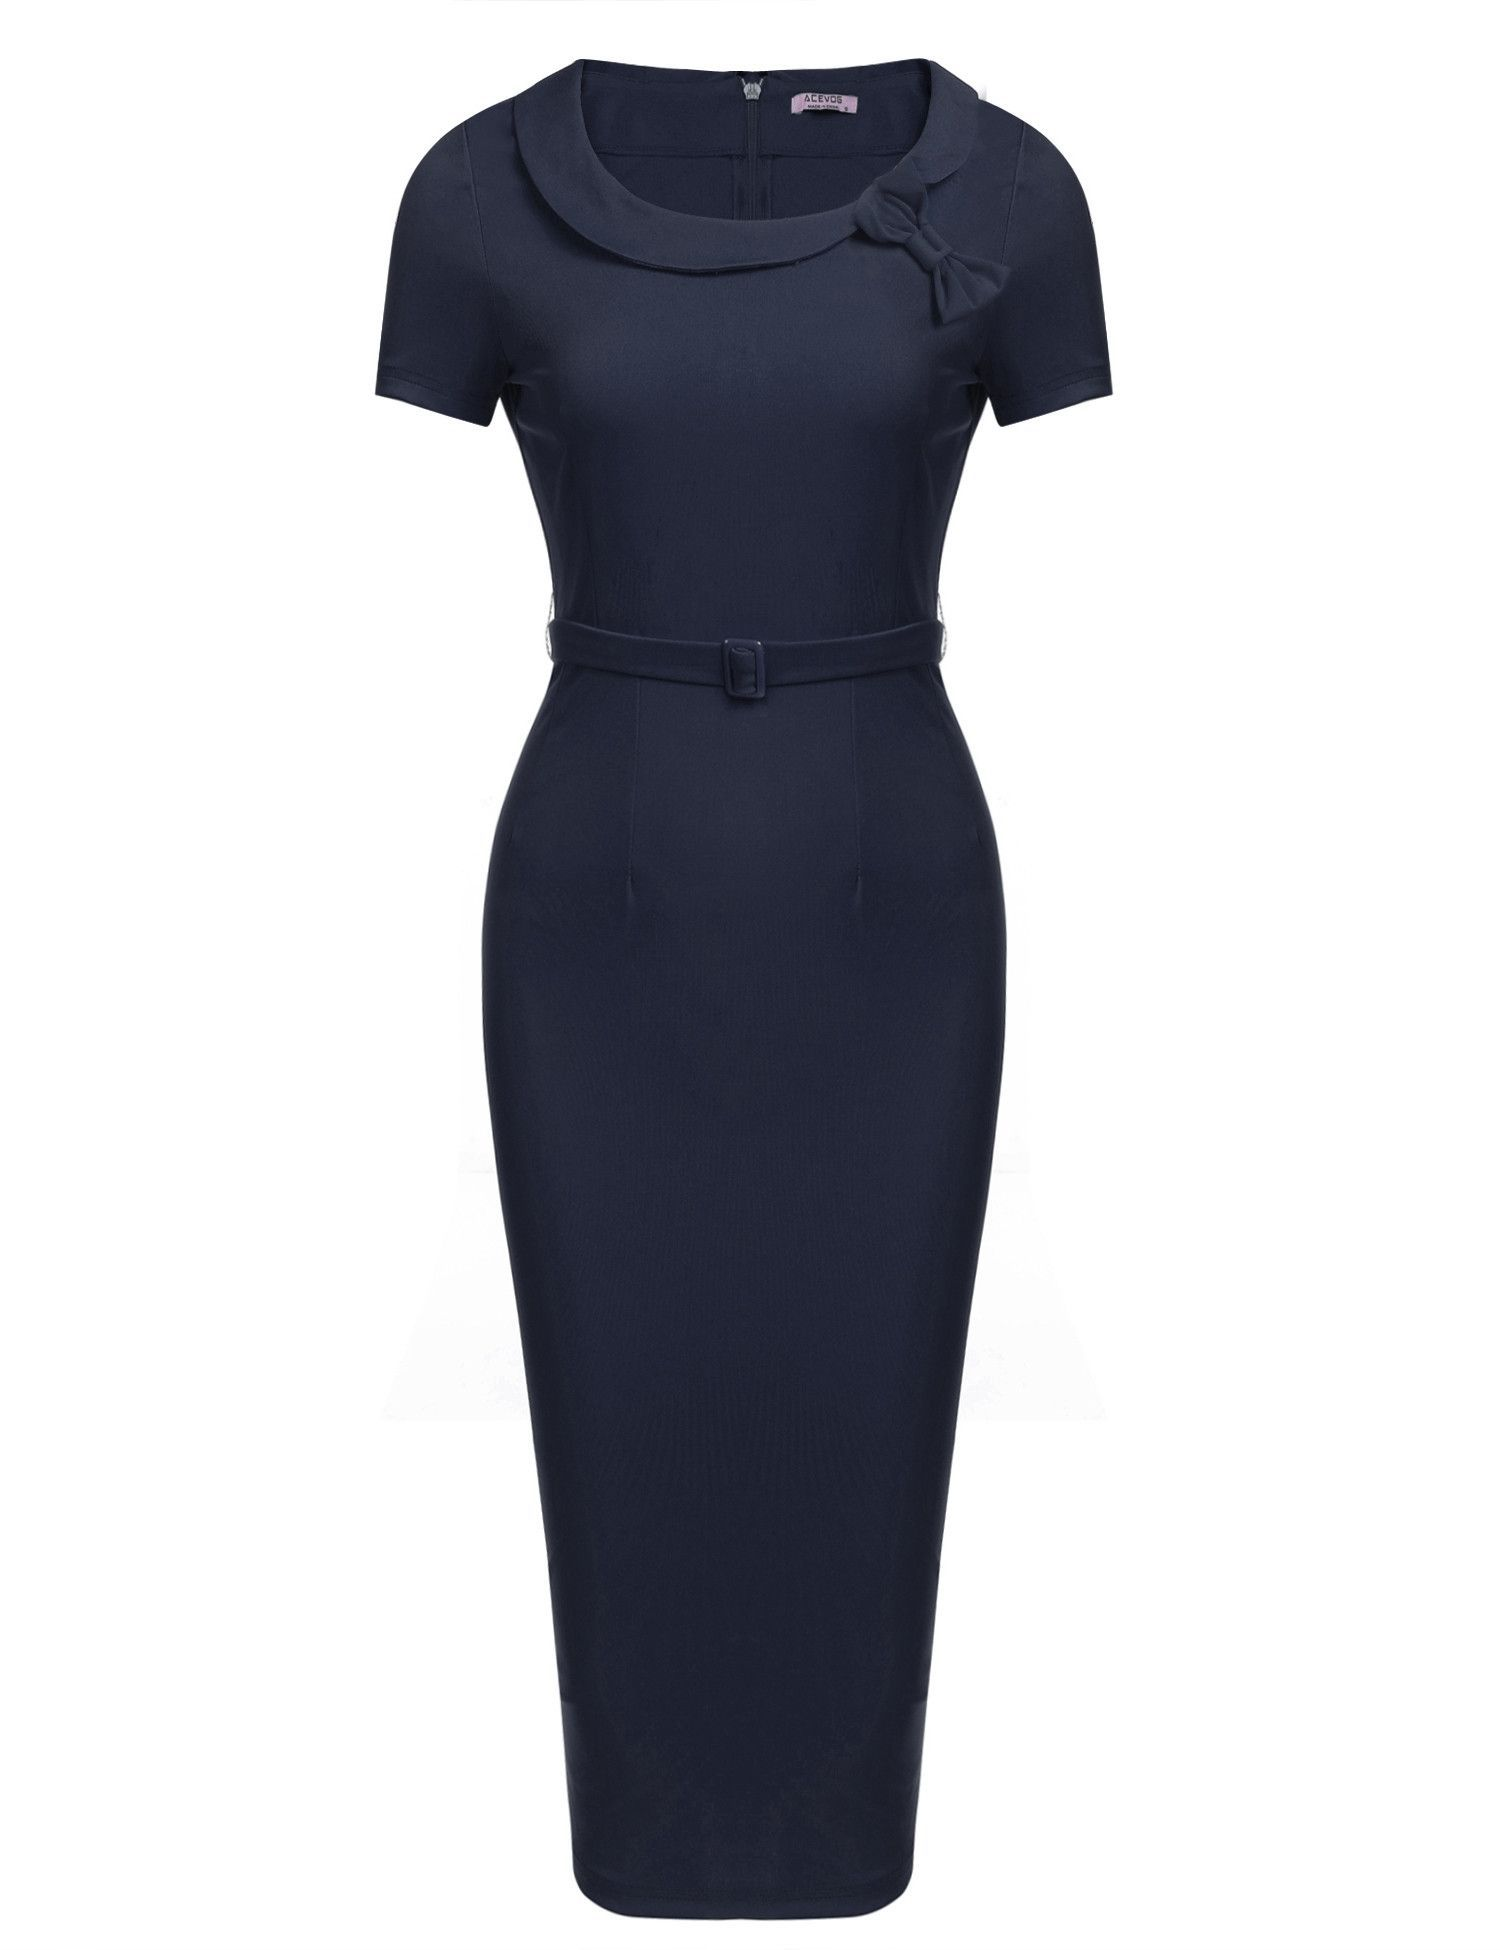 Navy blue bow peter pan collar short sleeves bodycon going out dress